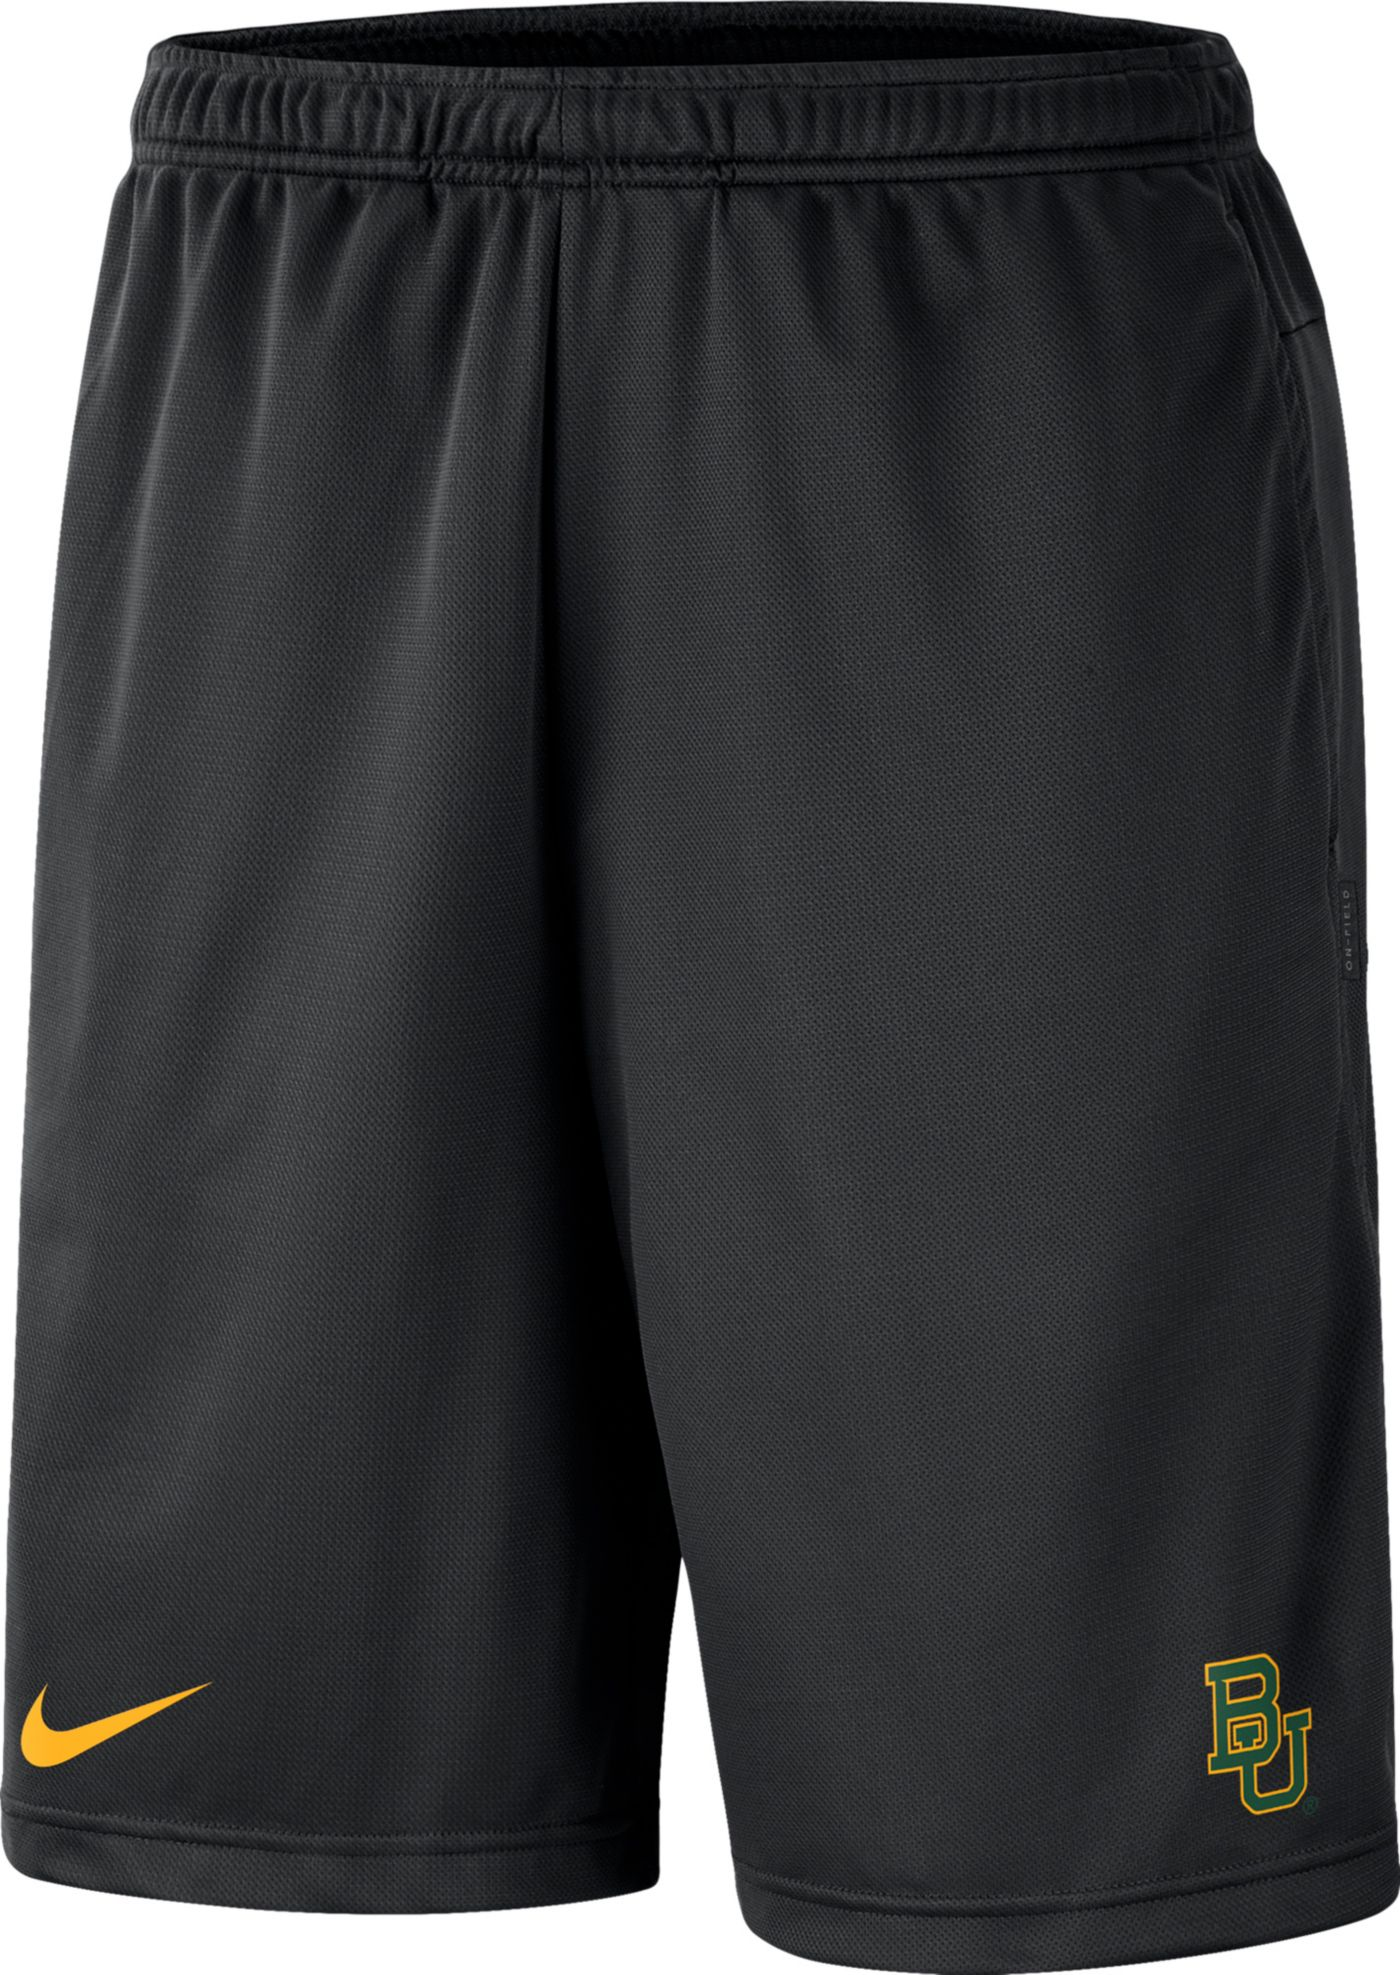 Nike Men's Baylor Bears Dri-FIT Coach Black Shorts